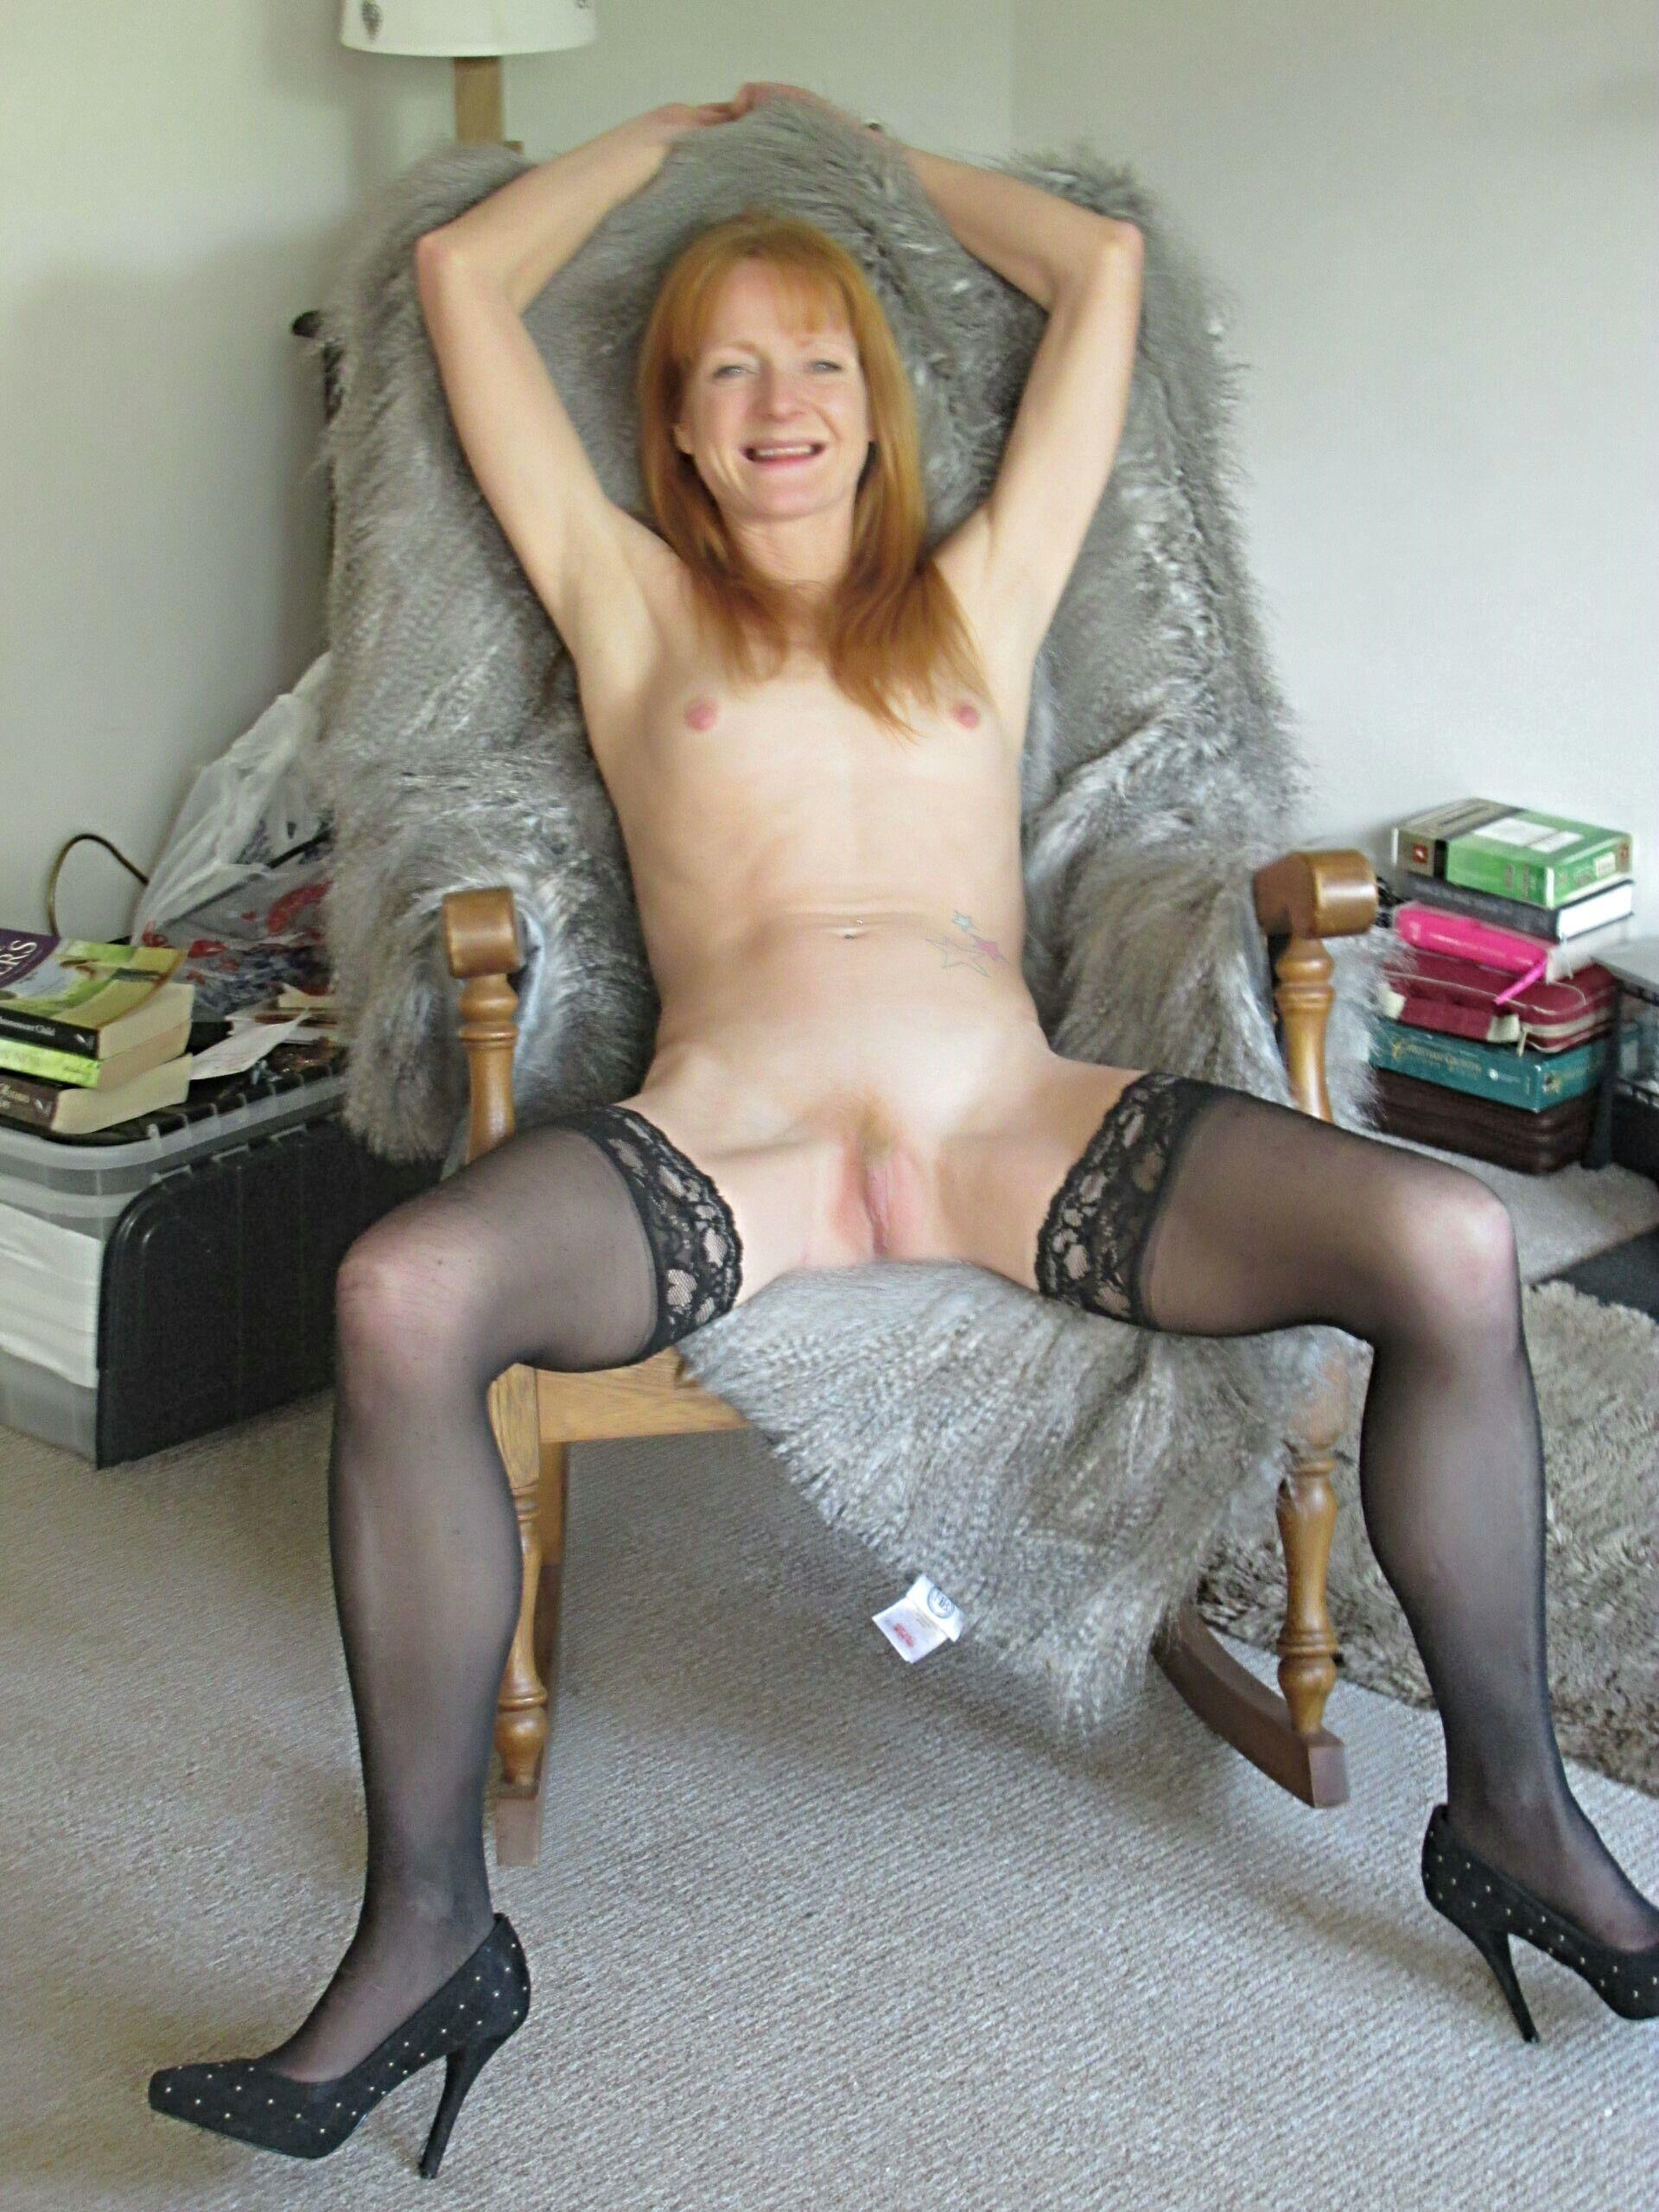 Small tits Redheaded fuck slut spreading legs in stockings real nudity pussy flash mature howife